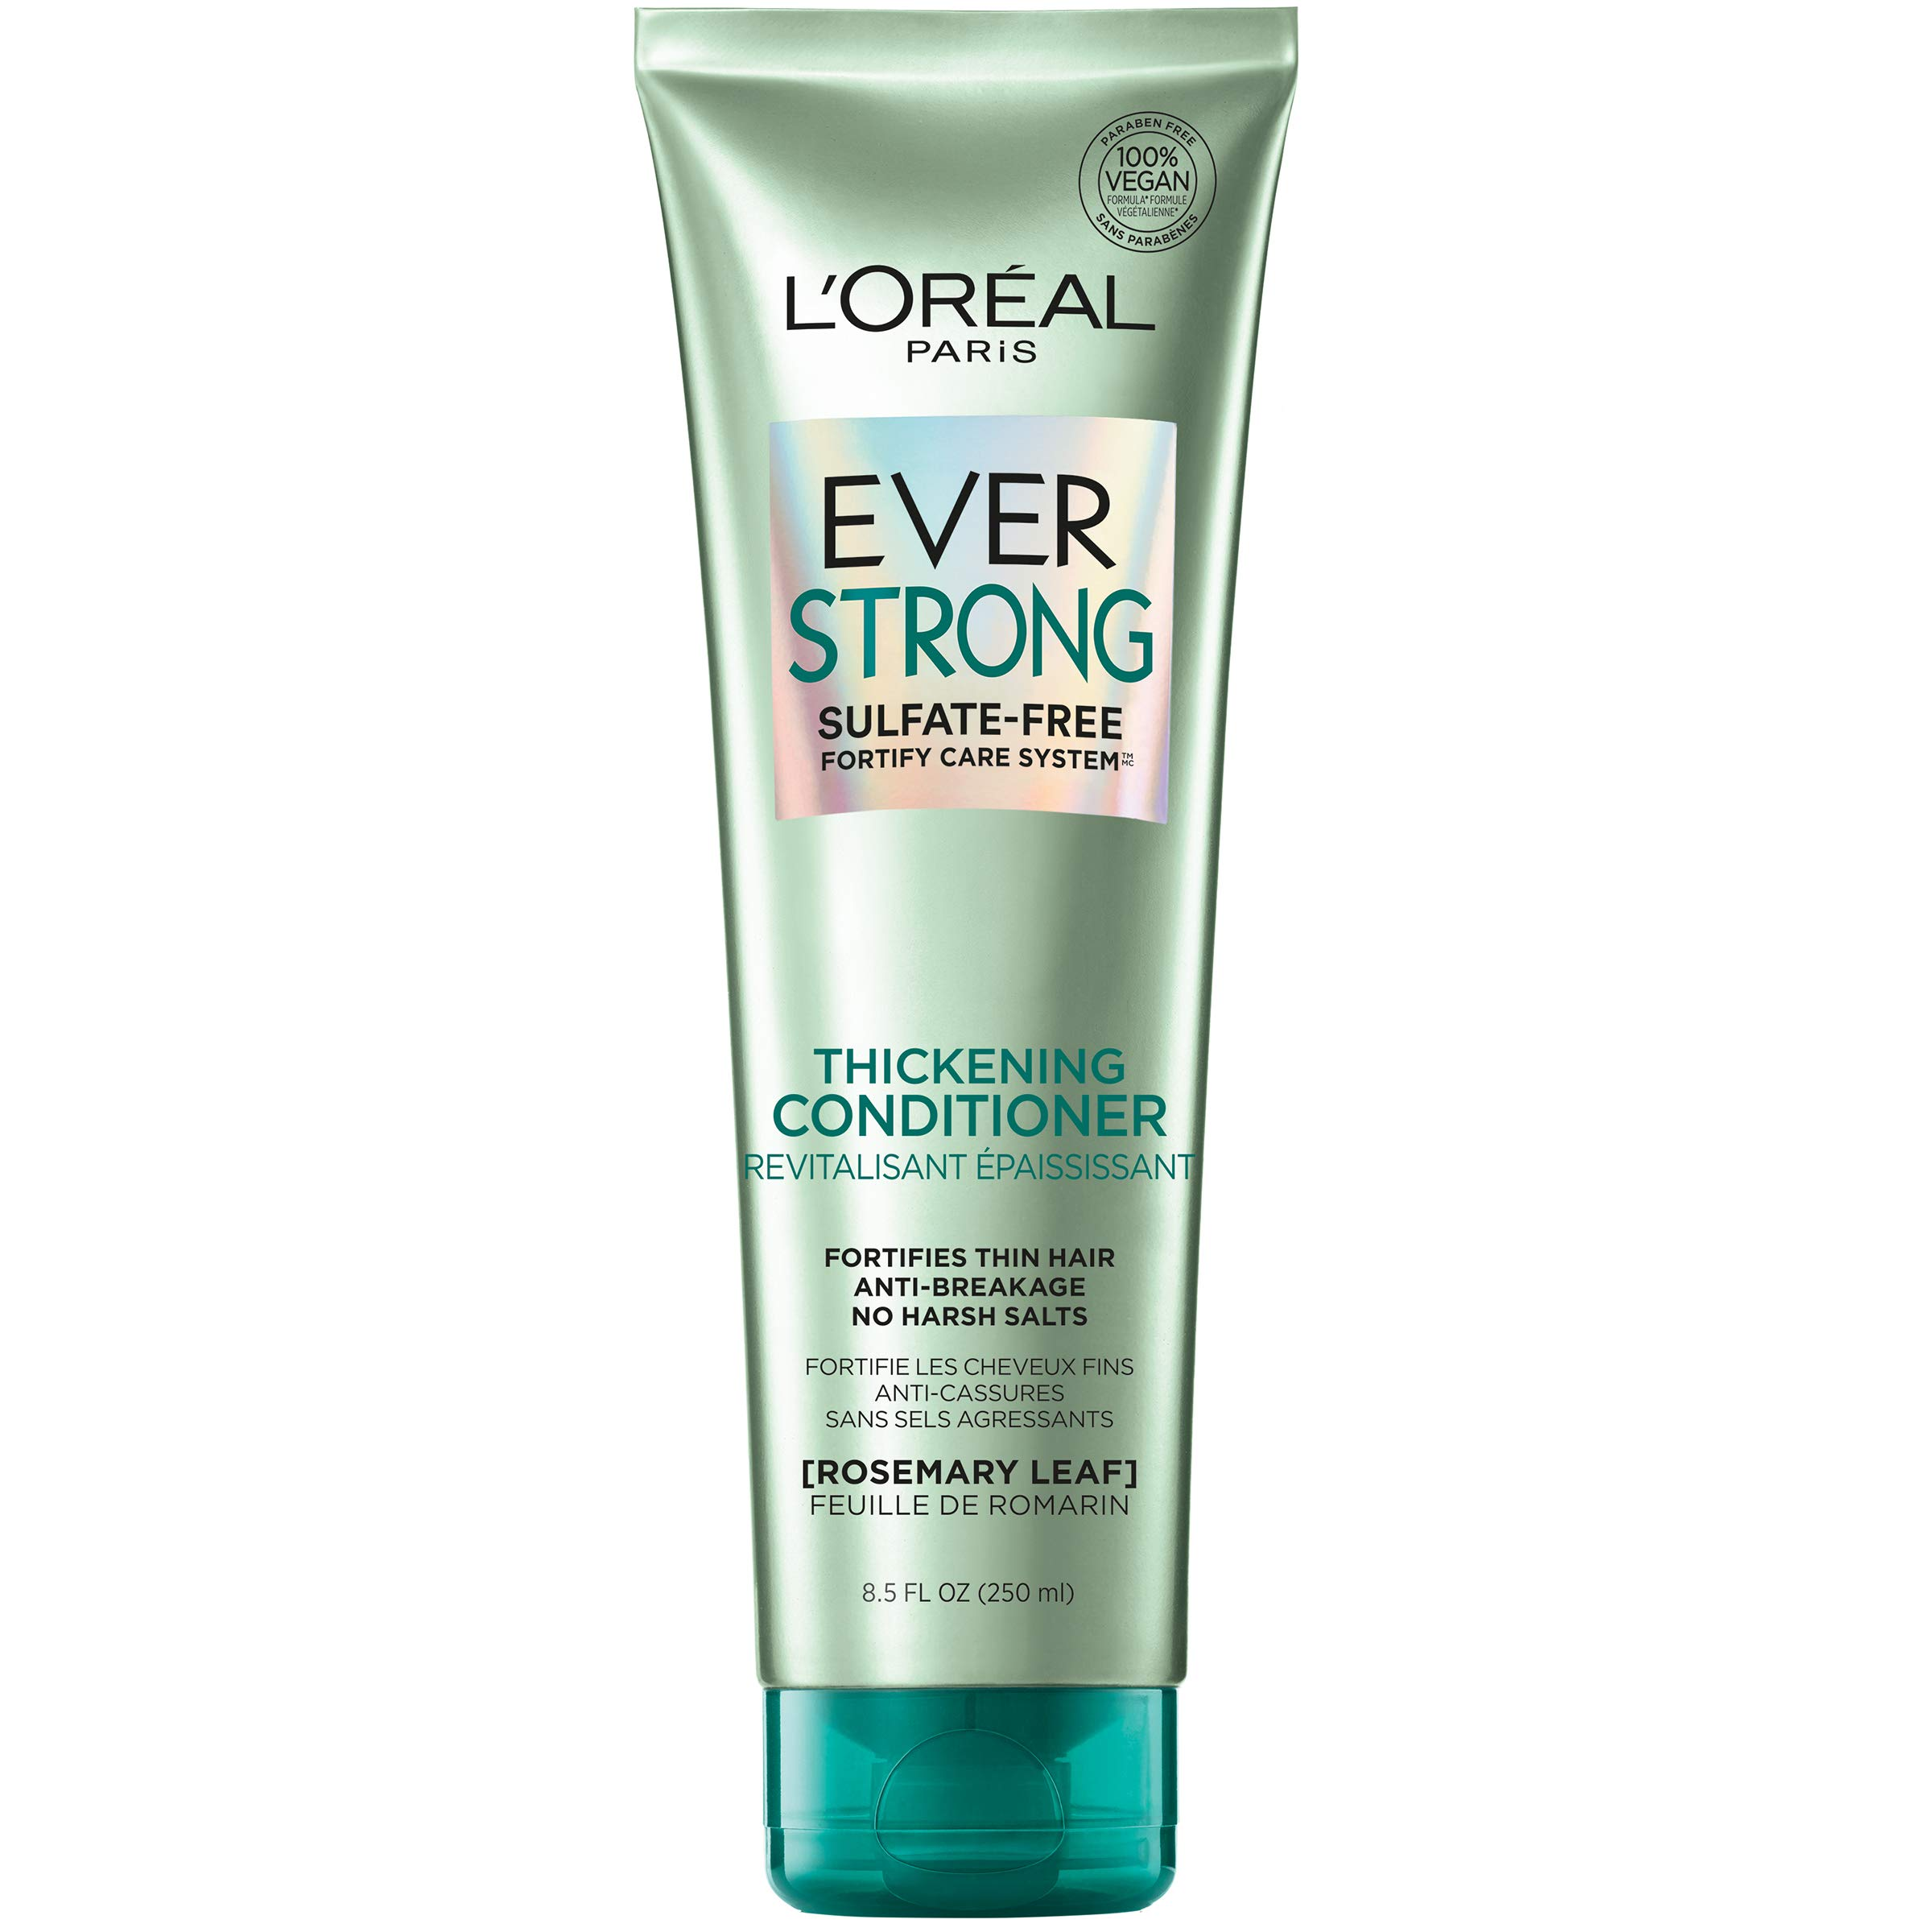 L'Oreal Paris EverStrong Thickening Conditioner, with Rosemary Leaf, 8.5 Ounces (Packaging May Vary)